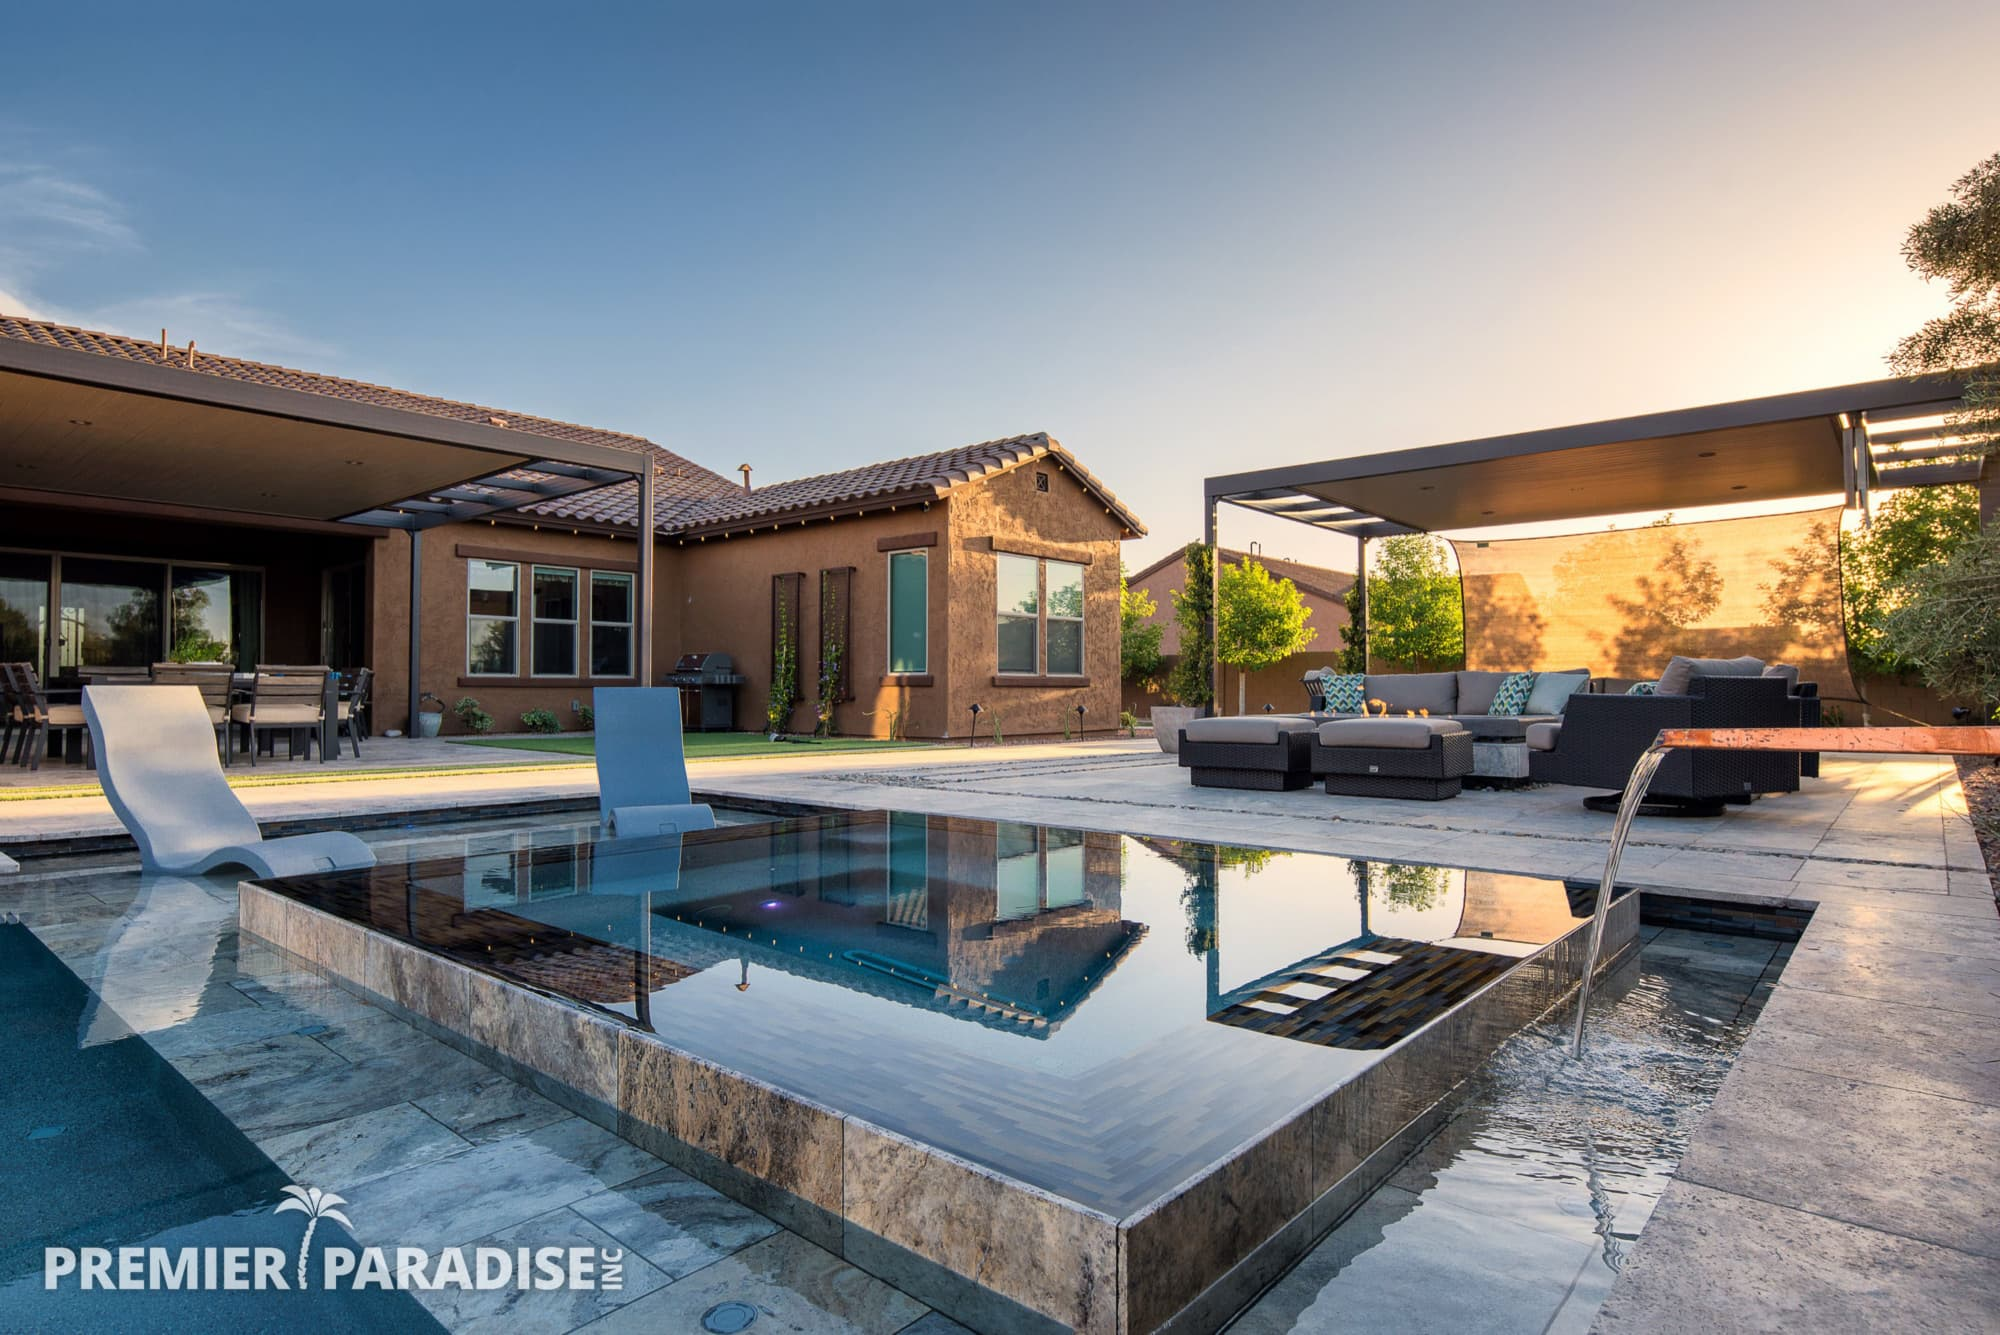 Modern Perimeter Overflow Spa & Luxury Outdoor Living ... on Outdoor Living Spa  id=62217